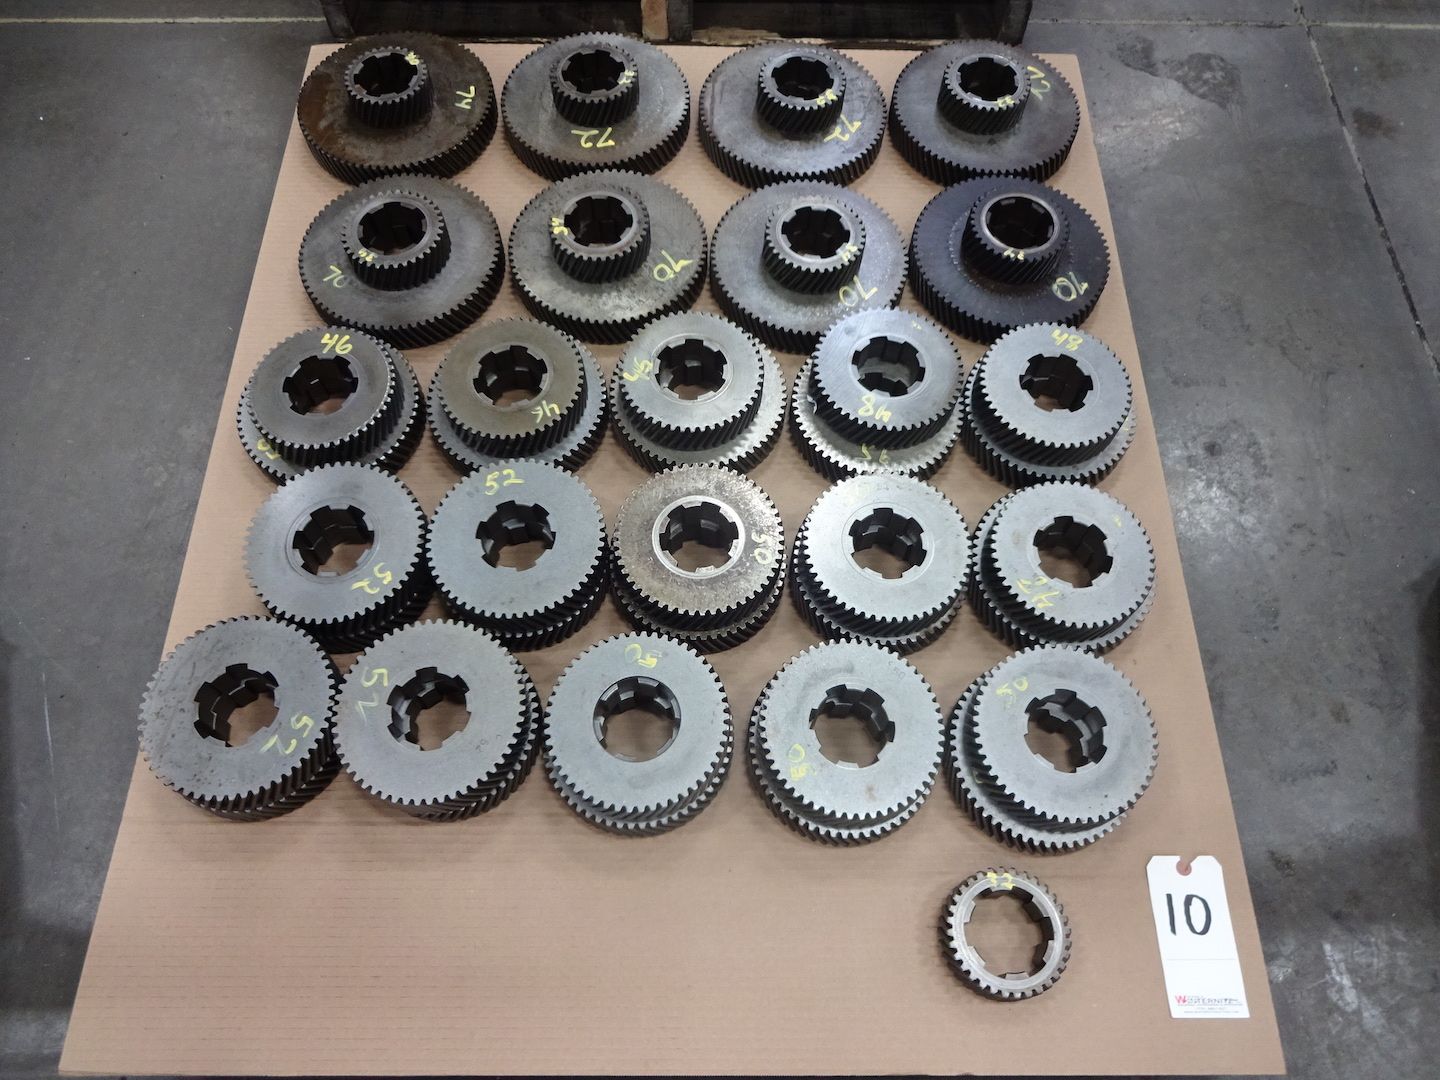 """Lot 10 - ASSORTED ACME 2-5/8"""" RB-8 OR 3-1/2"""" RB-6 CHANGE GEARS"""